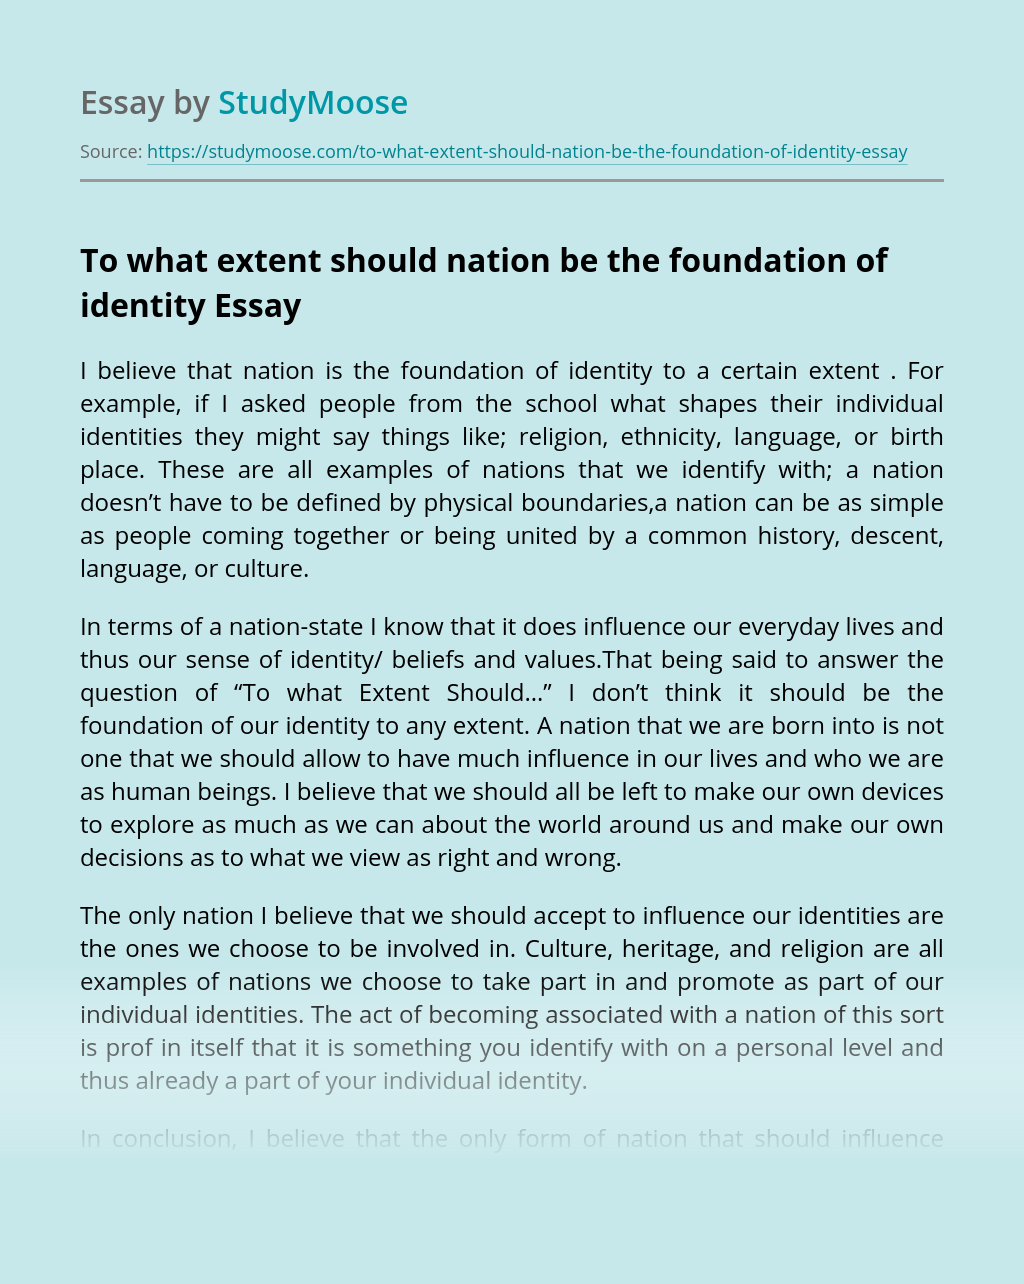 To what extent should nation be the foundation of identity